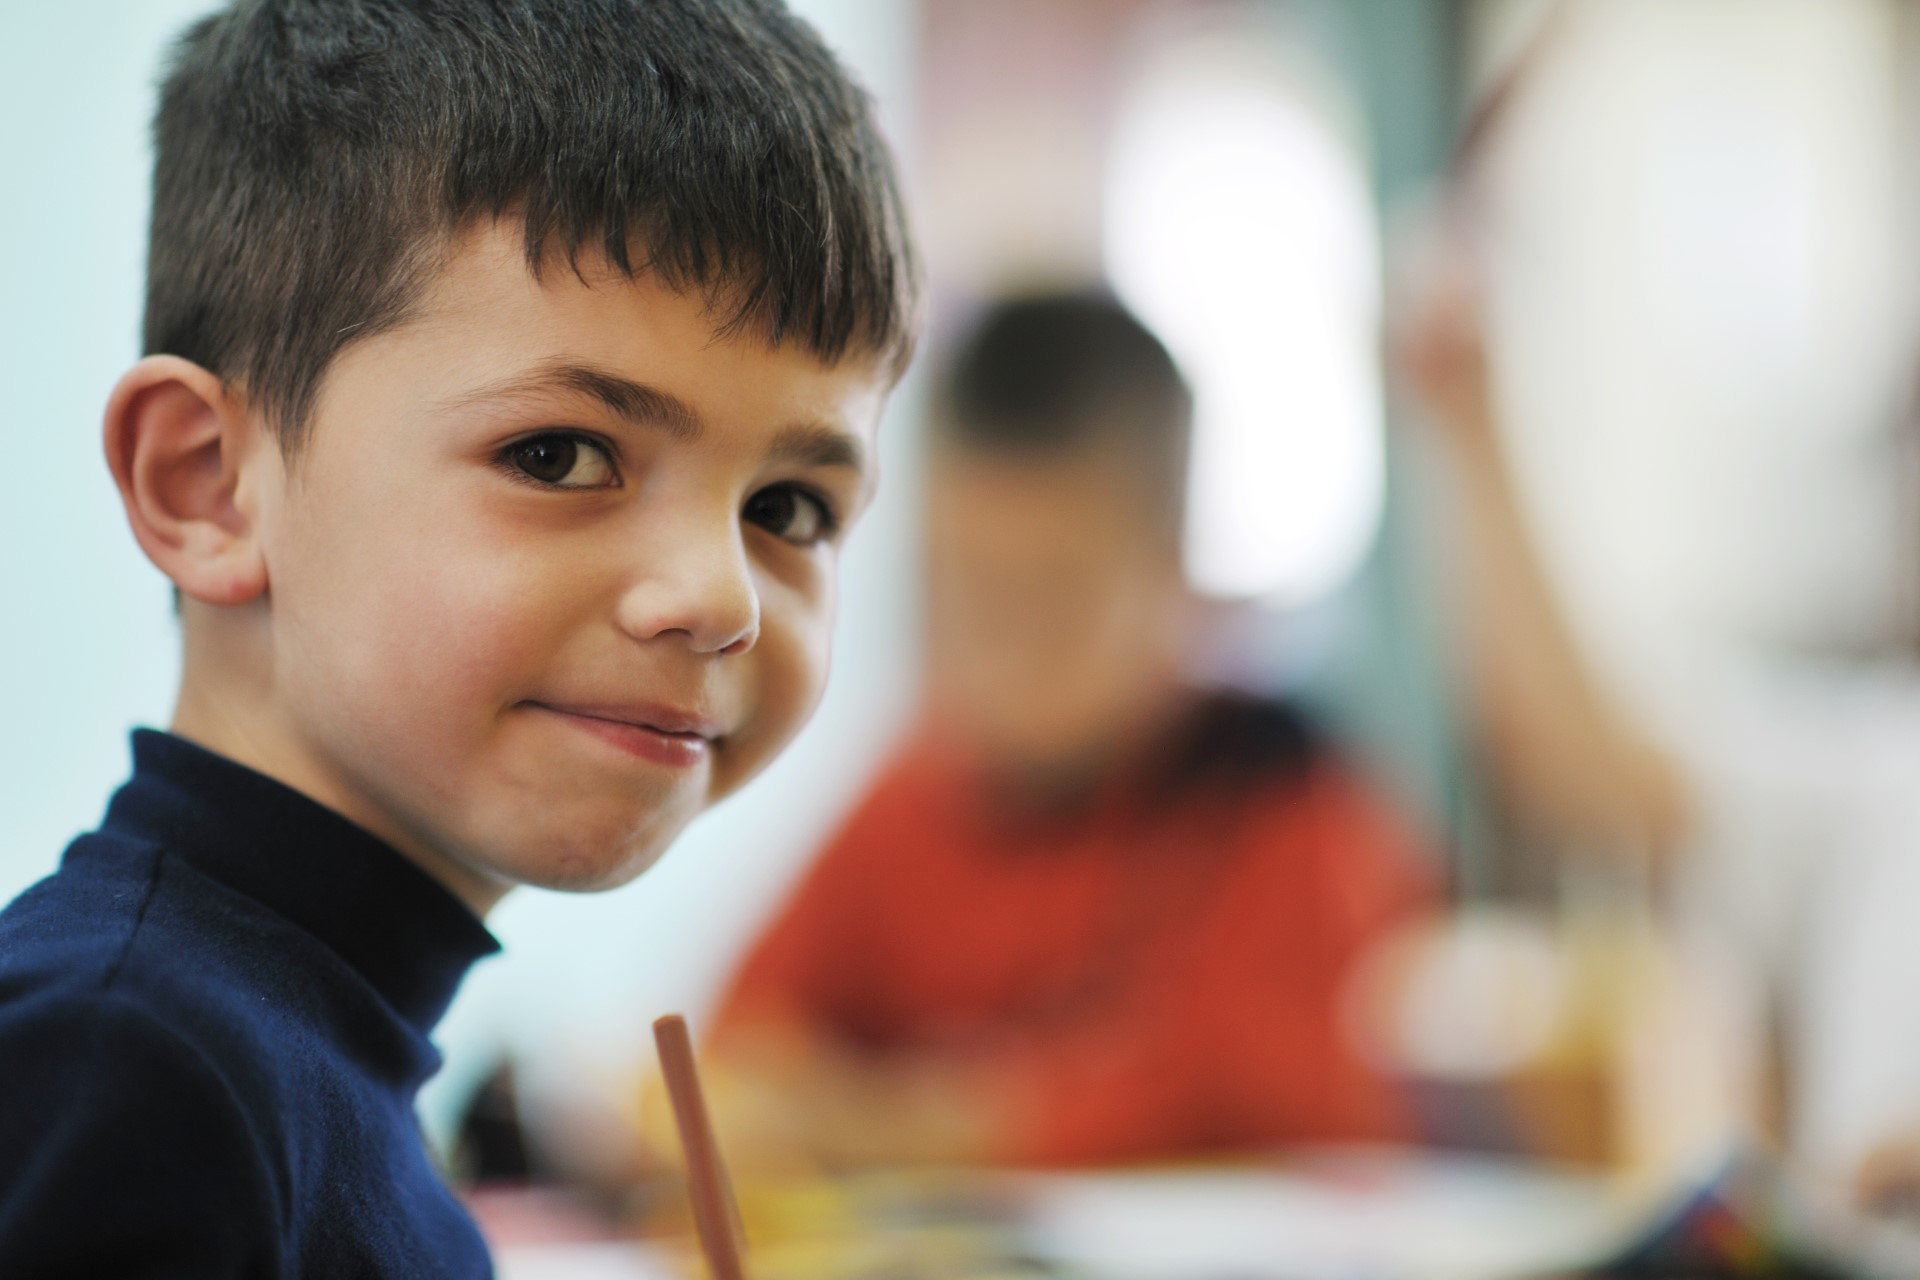 little boy in classroom looking at camera